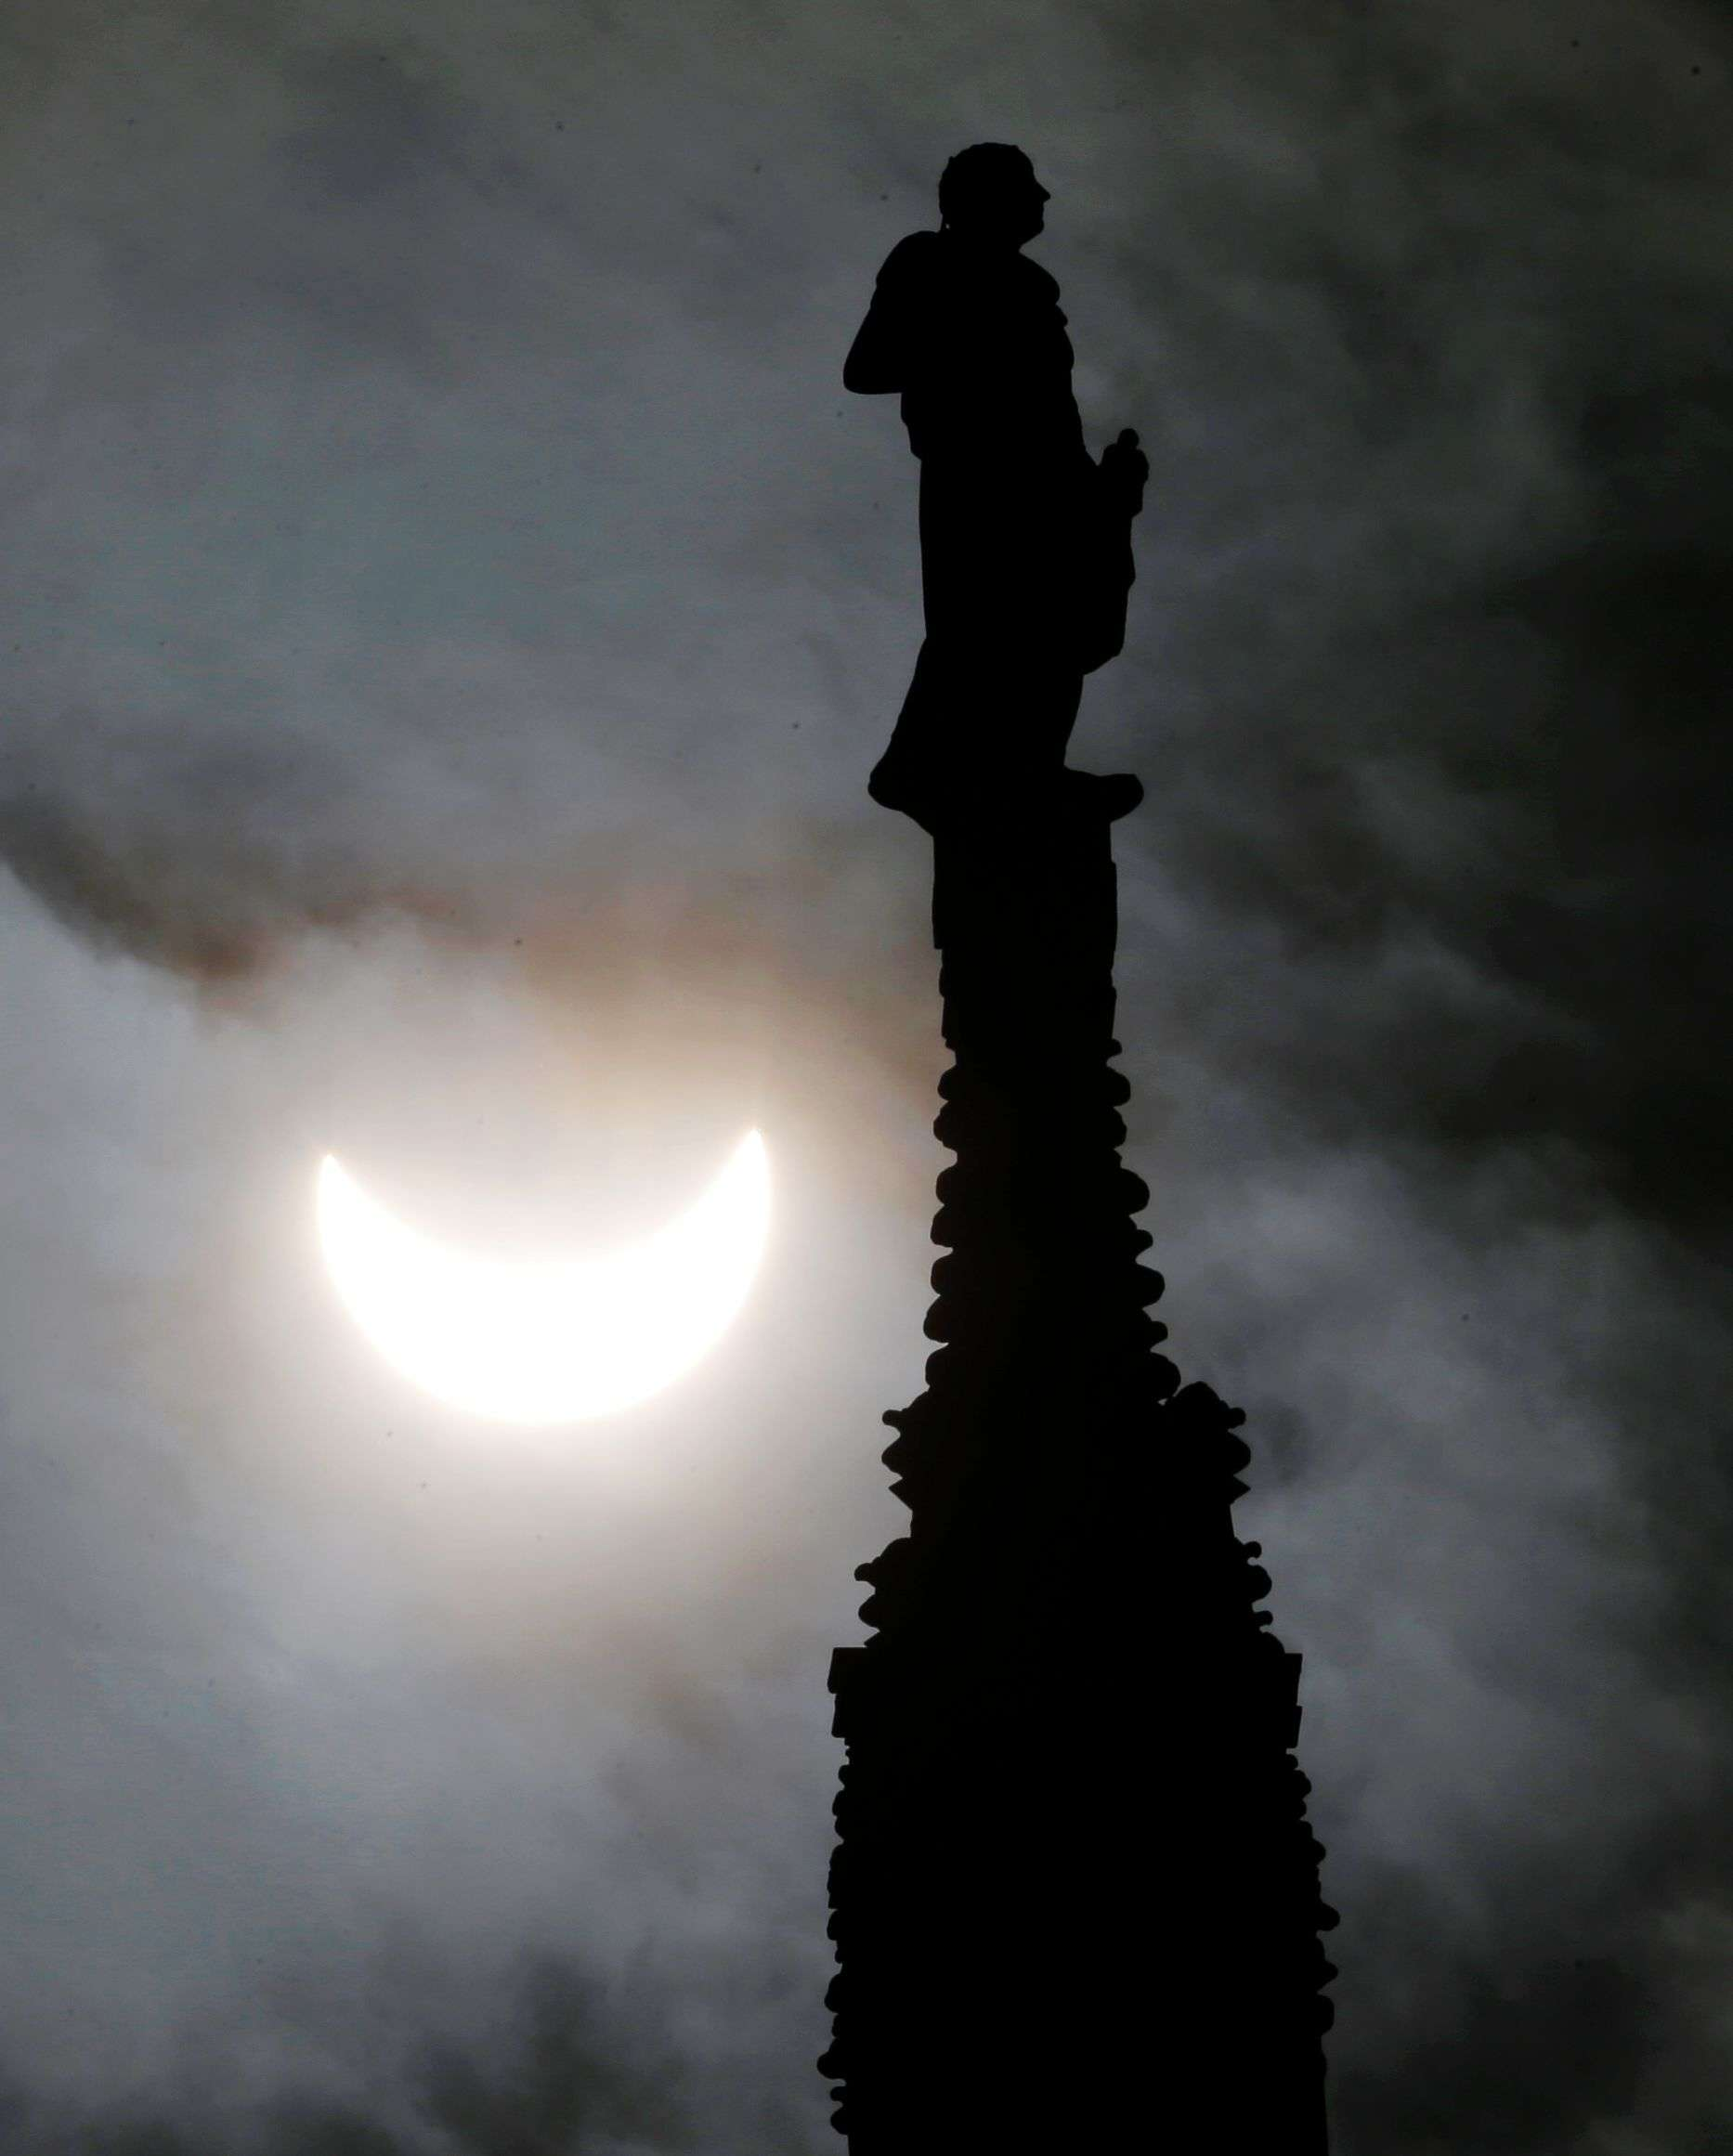 The moon starts to block the sun during a solar eclipse next to a statue of the Duomo gothic cathedral in Milan, Italy. (AP Photo/Antonio Calanni)